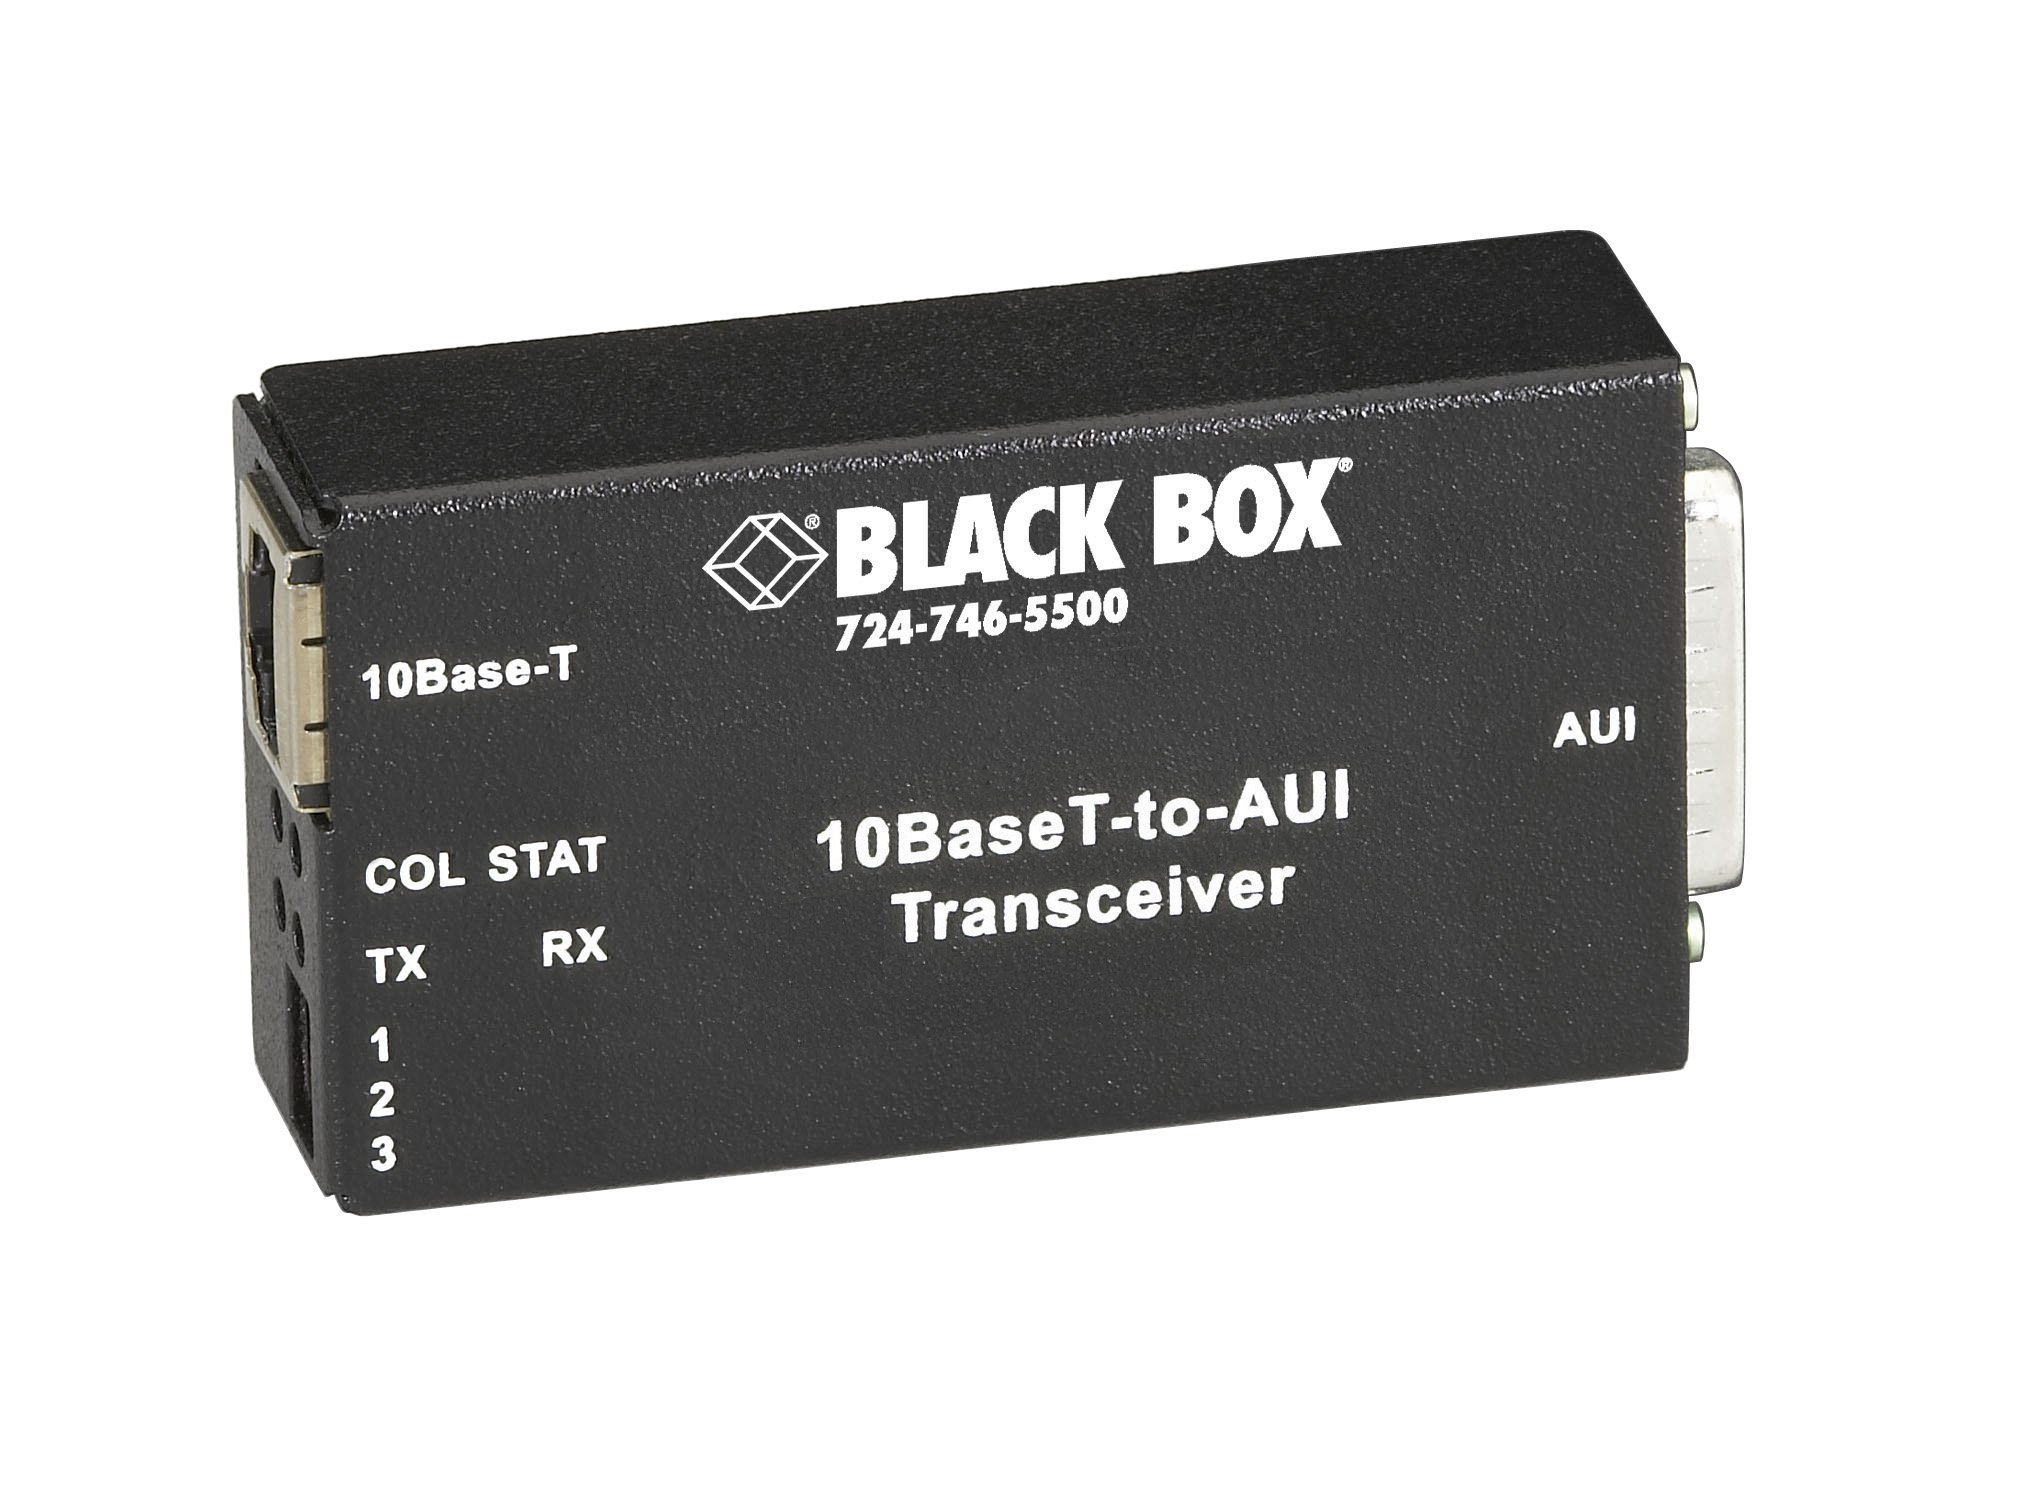 Black Box 10BASE-T to AUI Transceiver